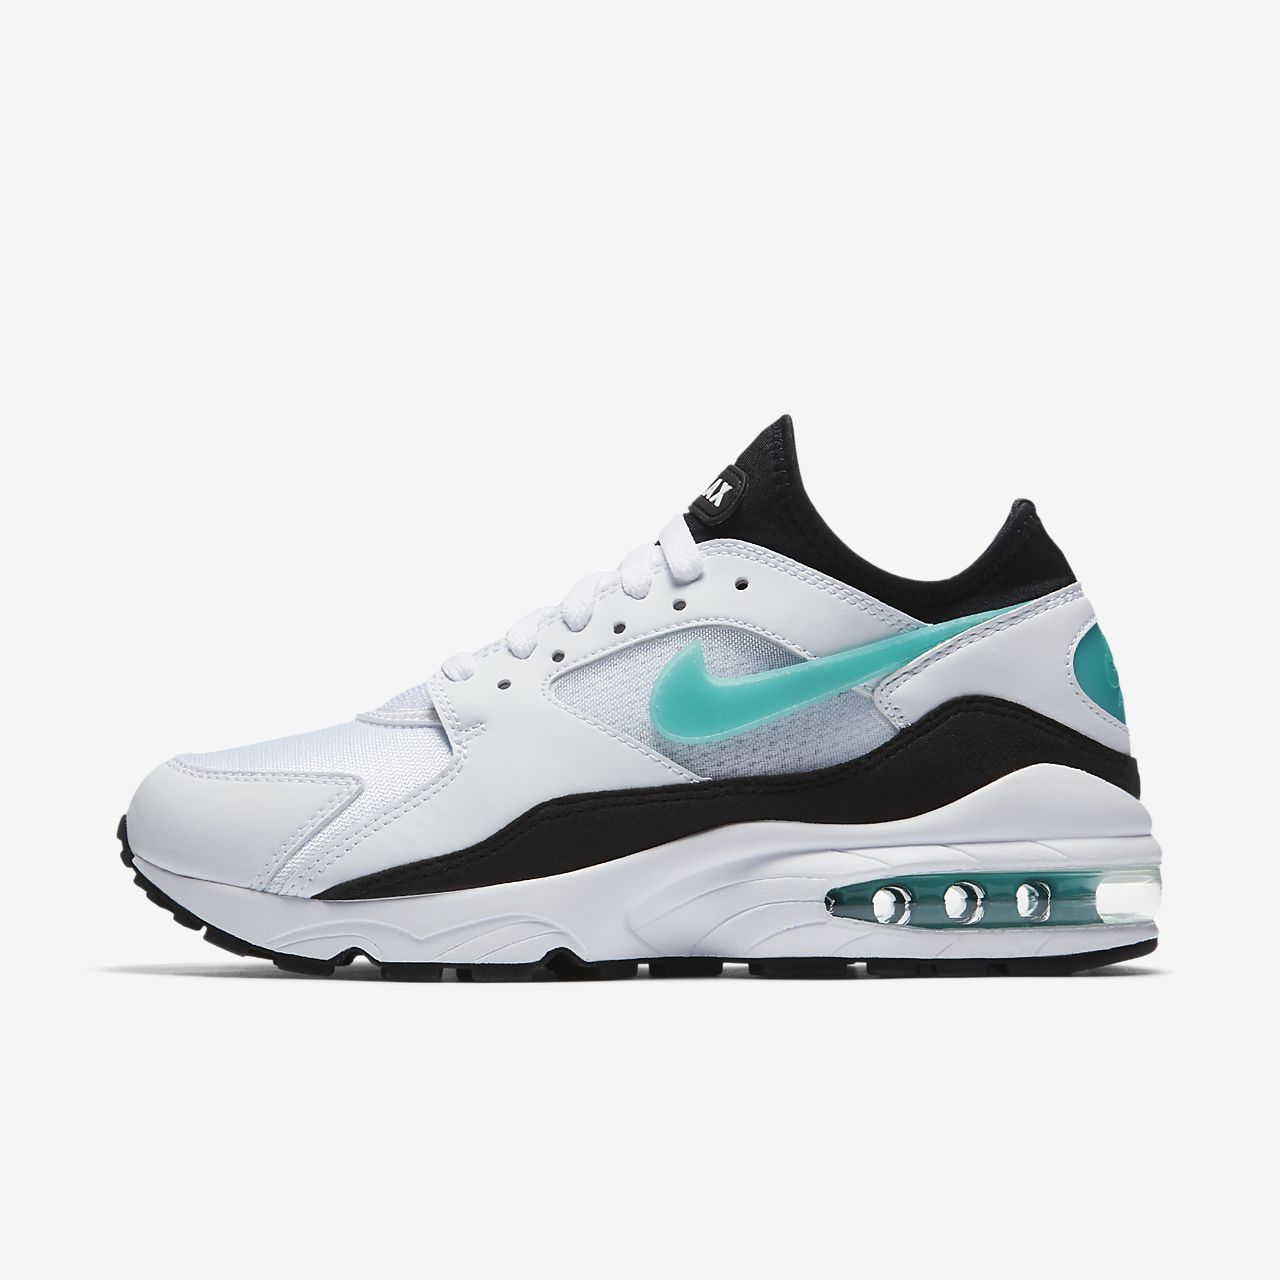 Womens Nike Air Max 93 White Black Dusty Cactus 307167-100